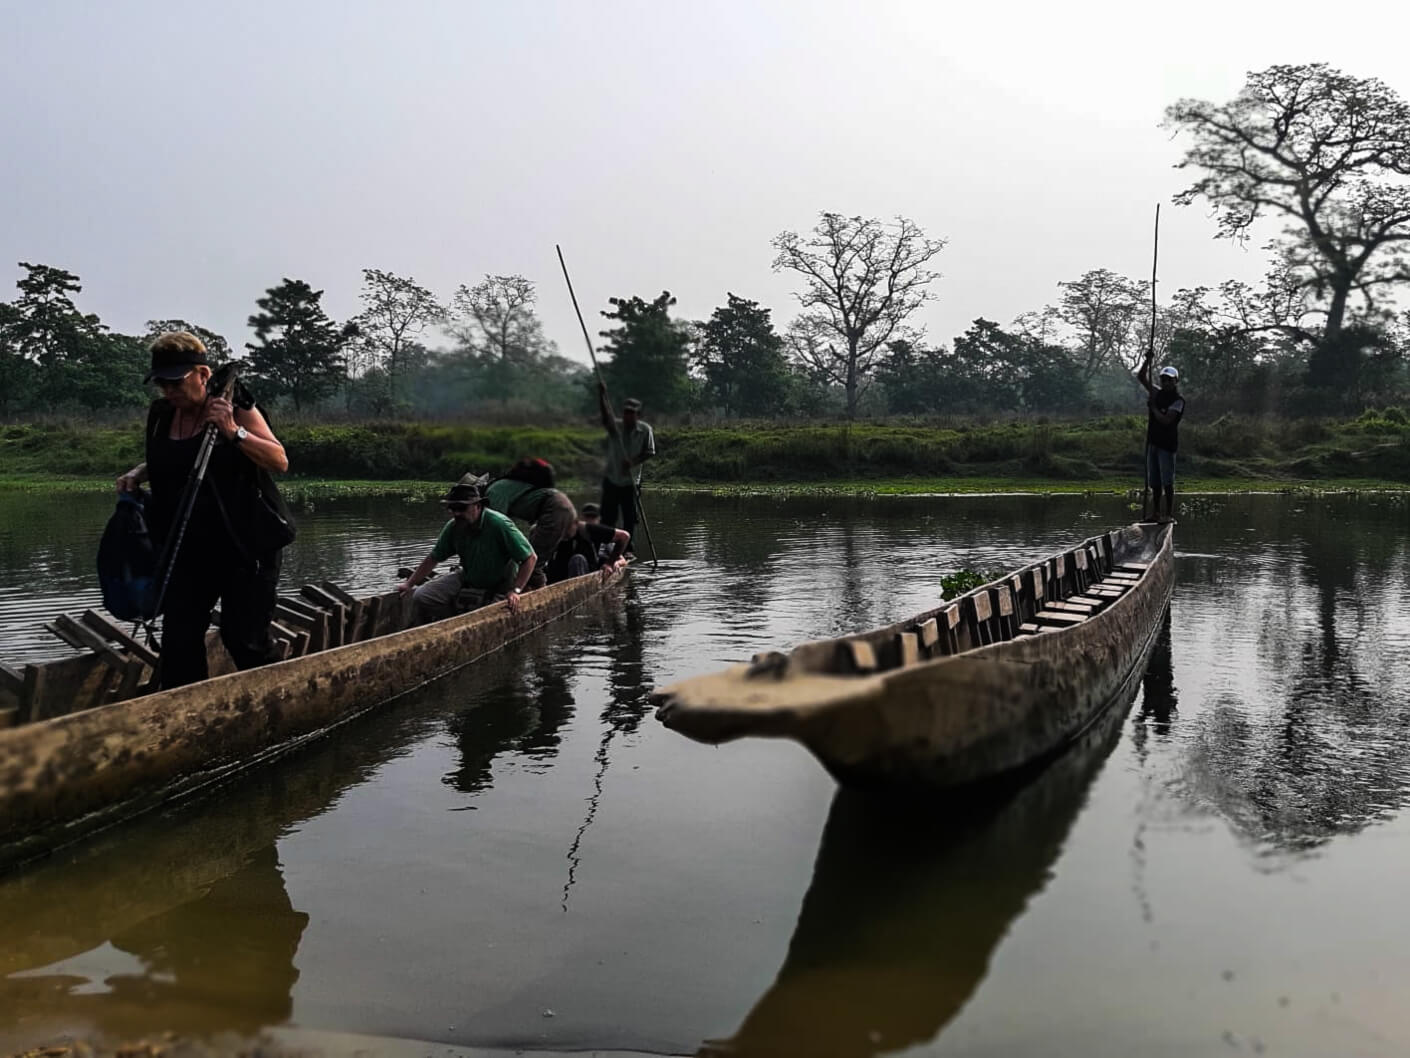 Tourists getting out of canoe